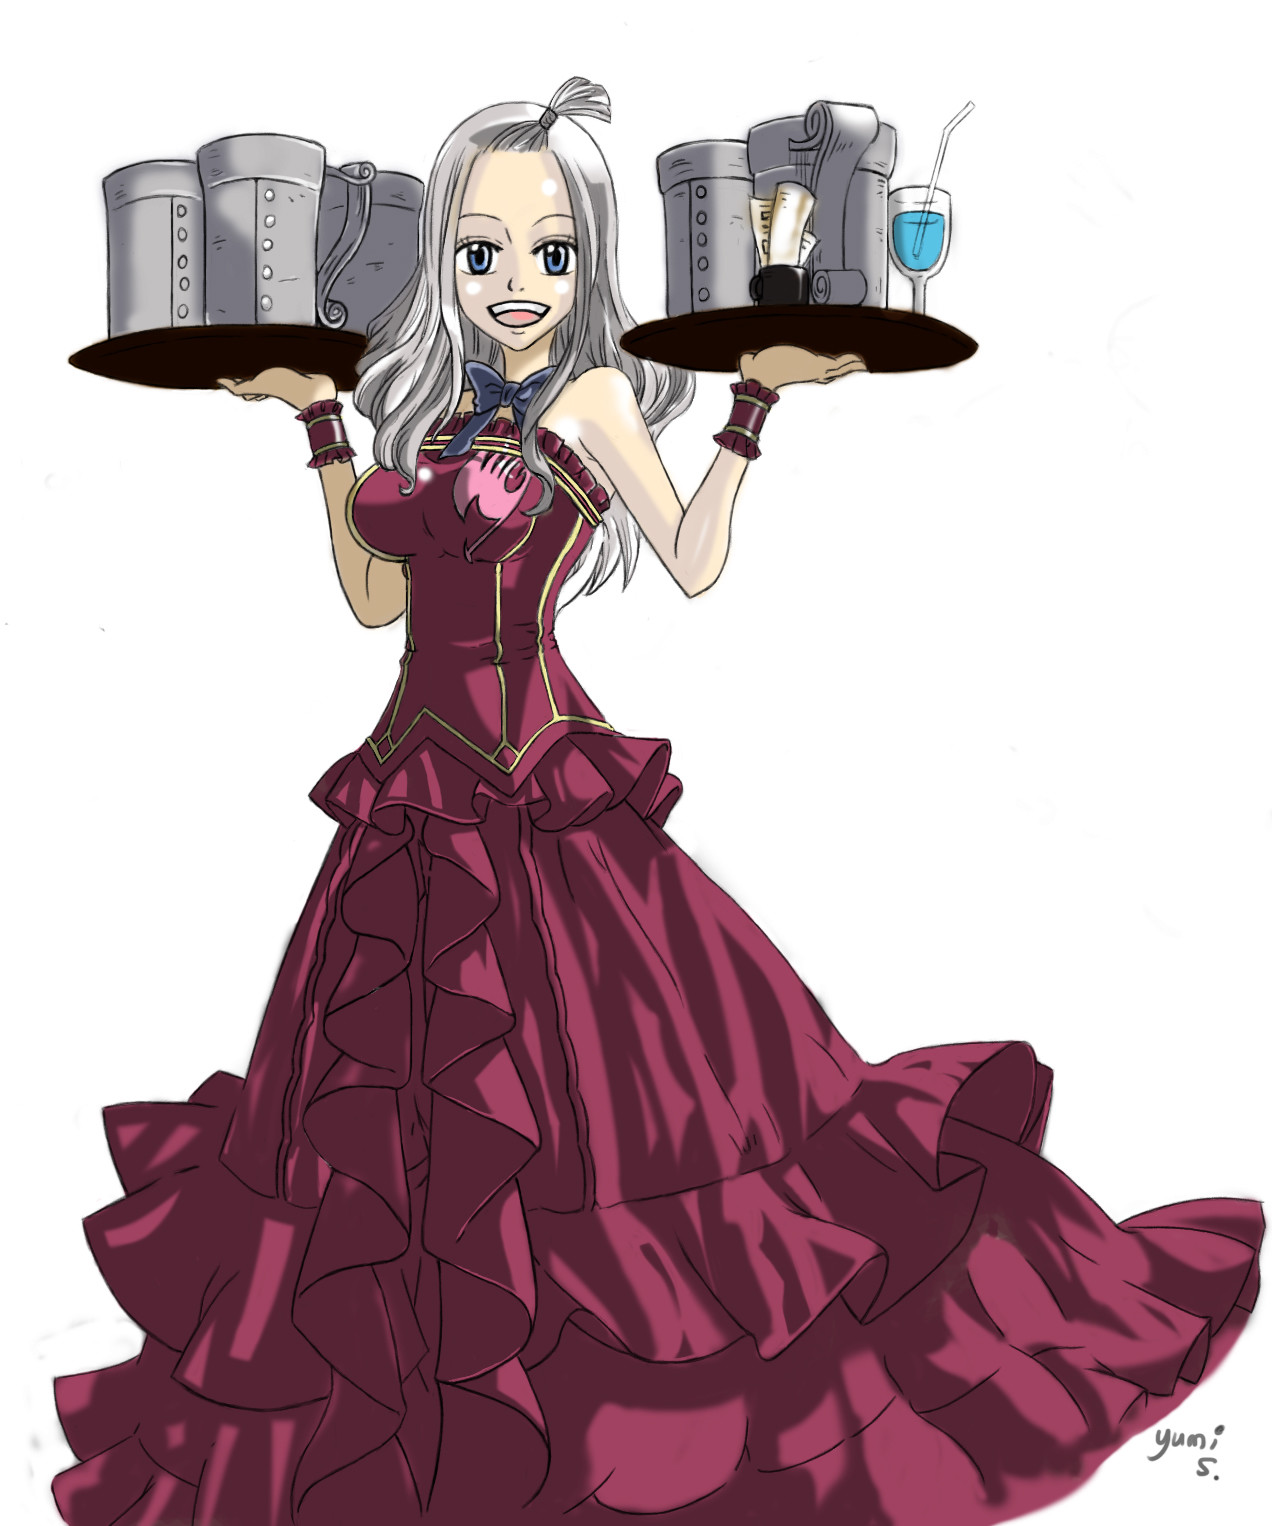 Mirajane Fairy Tail Fanart : Feel free to add sources if i can't.